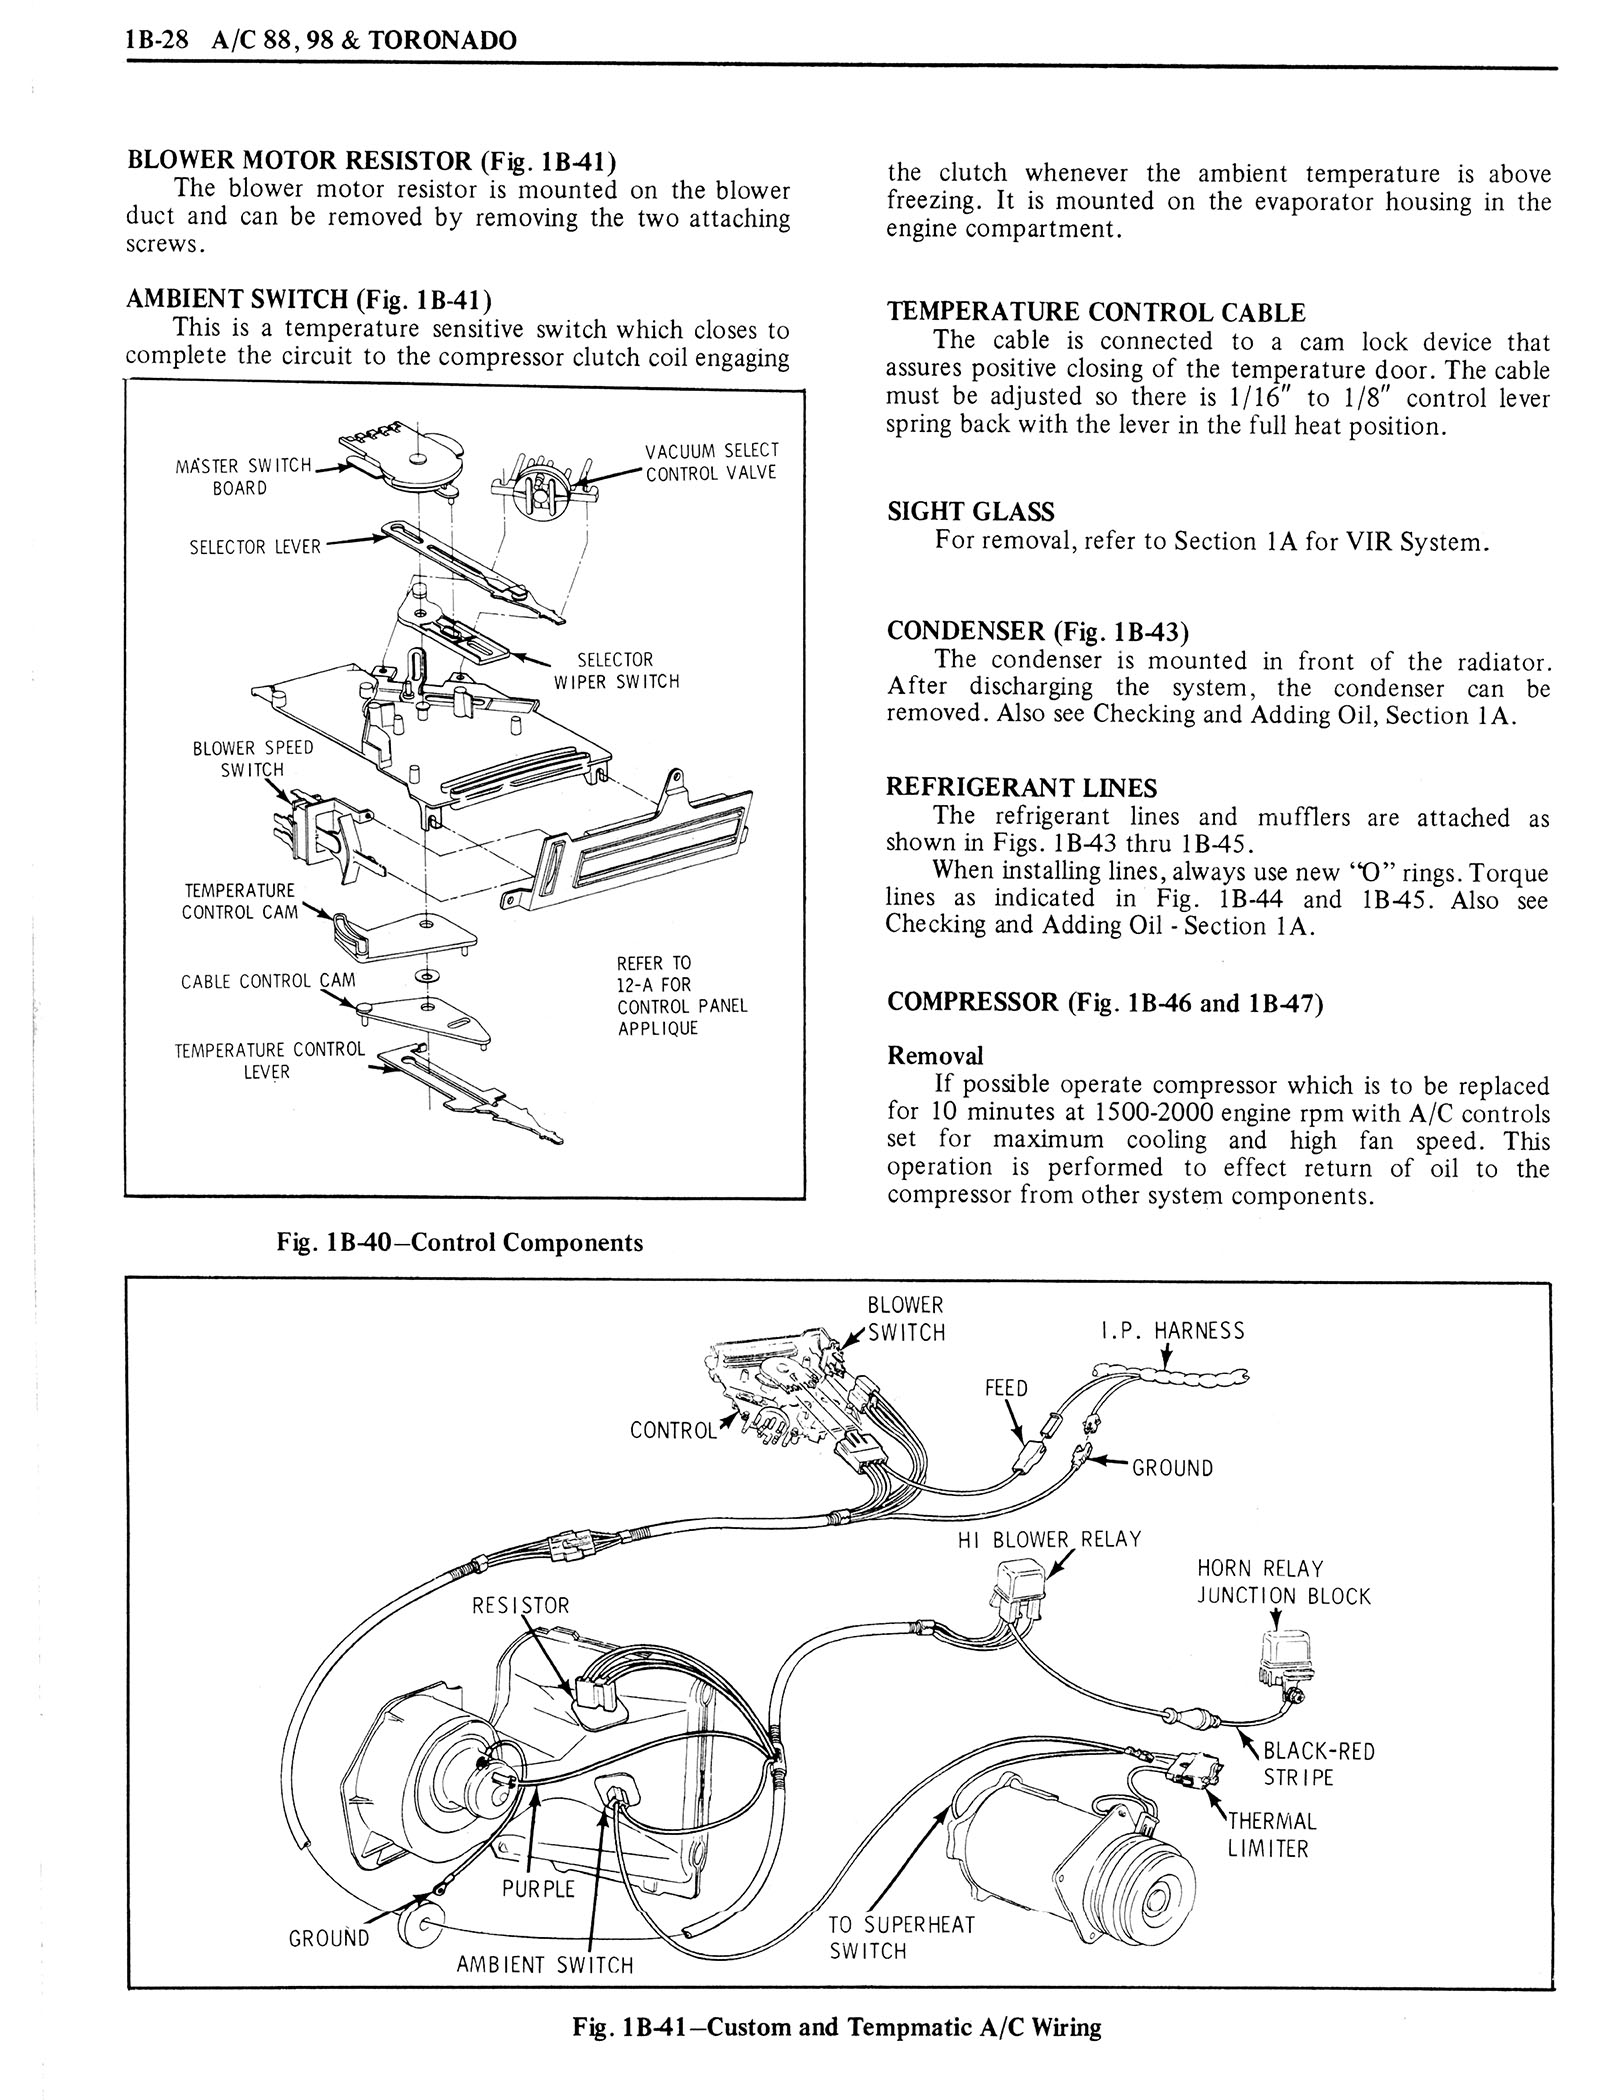 1976 Oldsmobile Service Manual page 126 of 1390